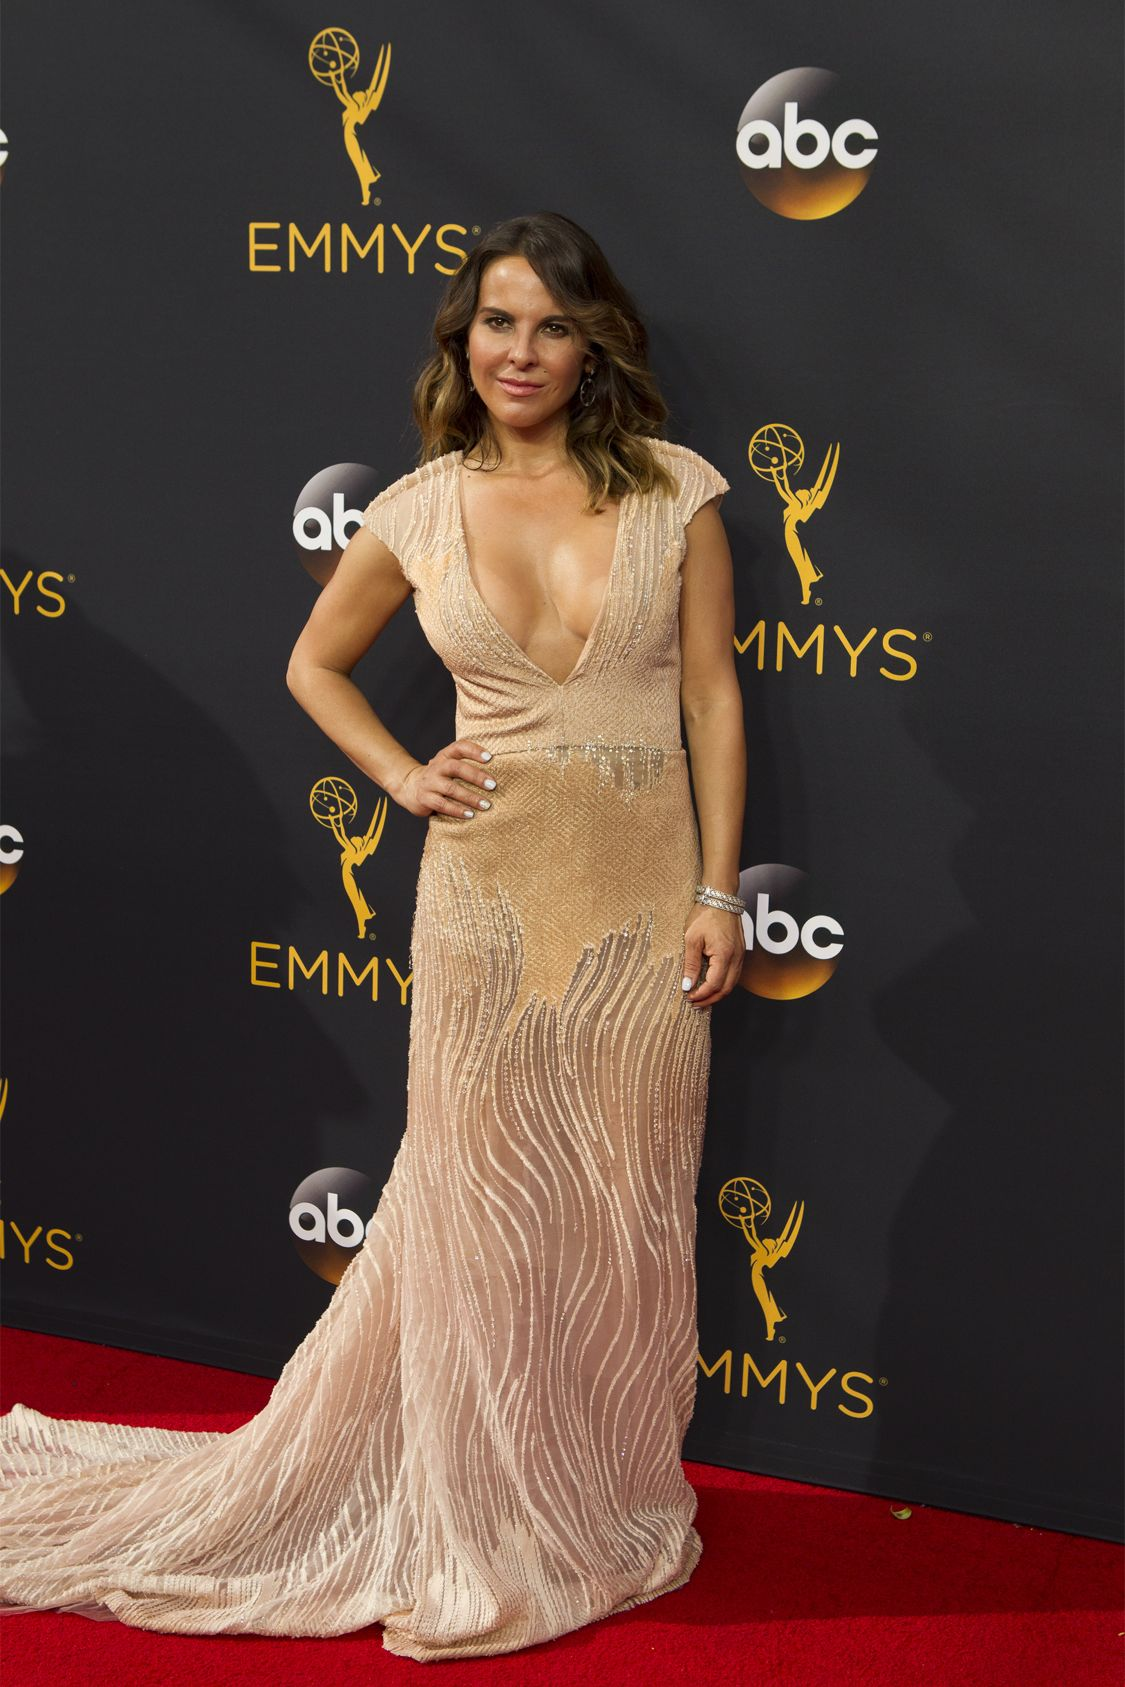 """THE 68TH EMMY(r) AWARDS - """"The 68th Emmy Awards"""" broadcasts live from The Microsoft Theater in Los Angeles, Sunday, September 18 (7:00-11:00 p.m. EDT/4:00-8:00 p.m. PDT), on ABC and is hosted by Jimmy Kimmel. (ABC/Rick Rowell) KATE DEL CASTILLO"""